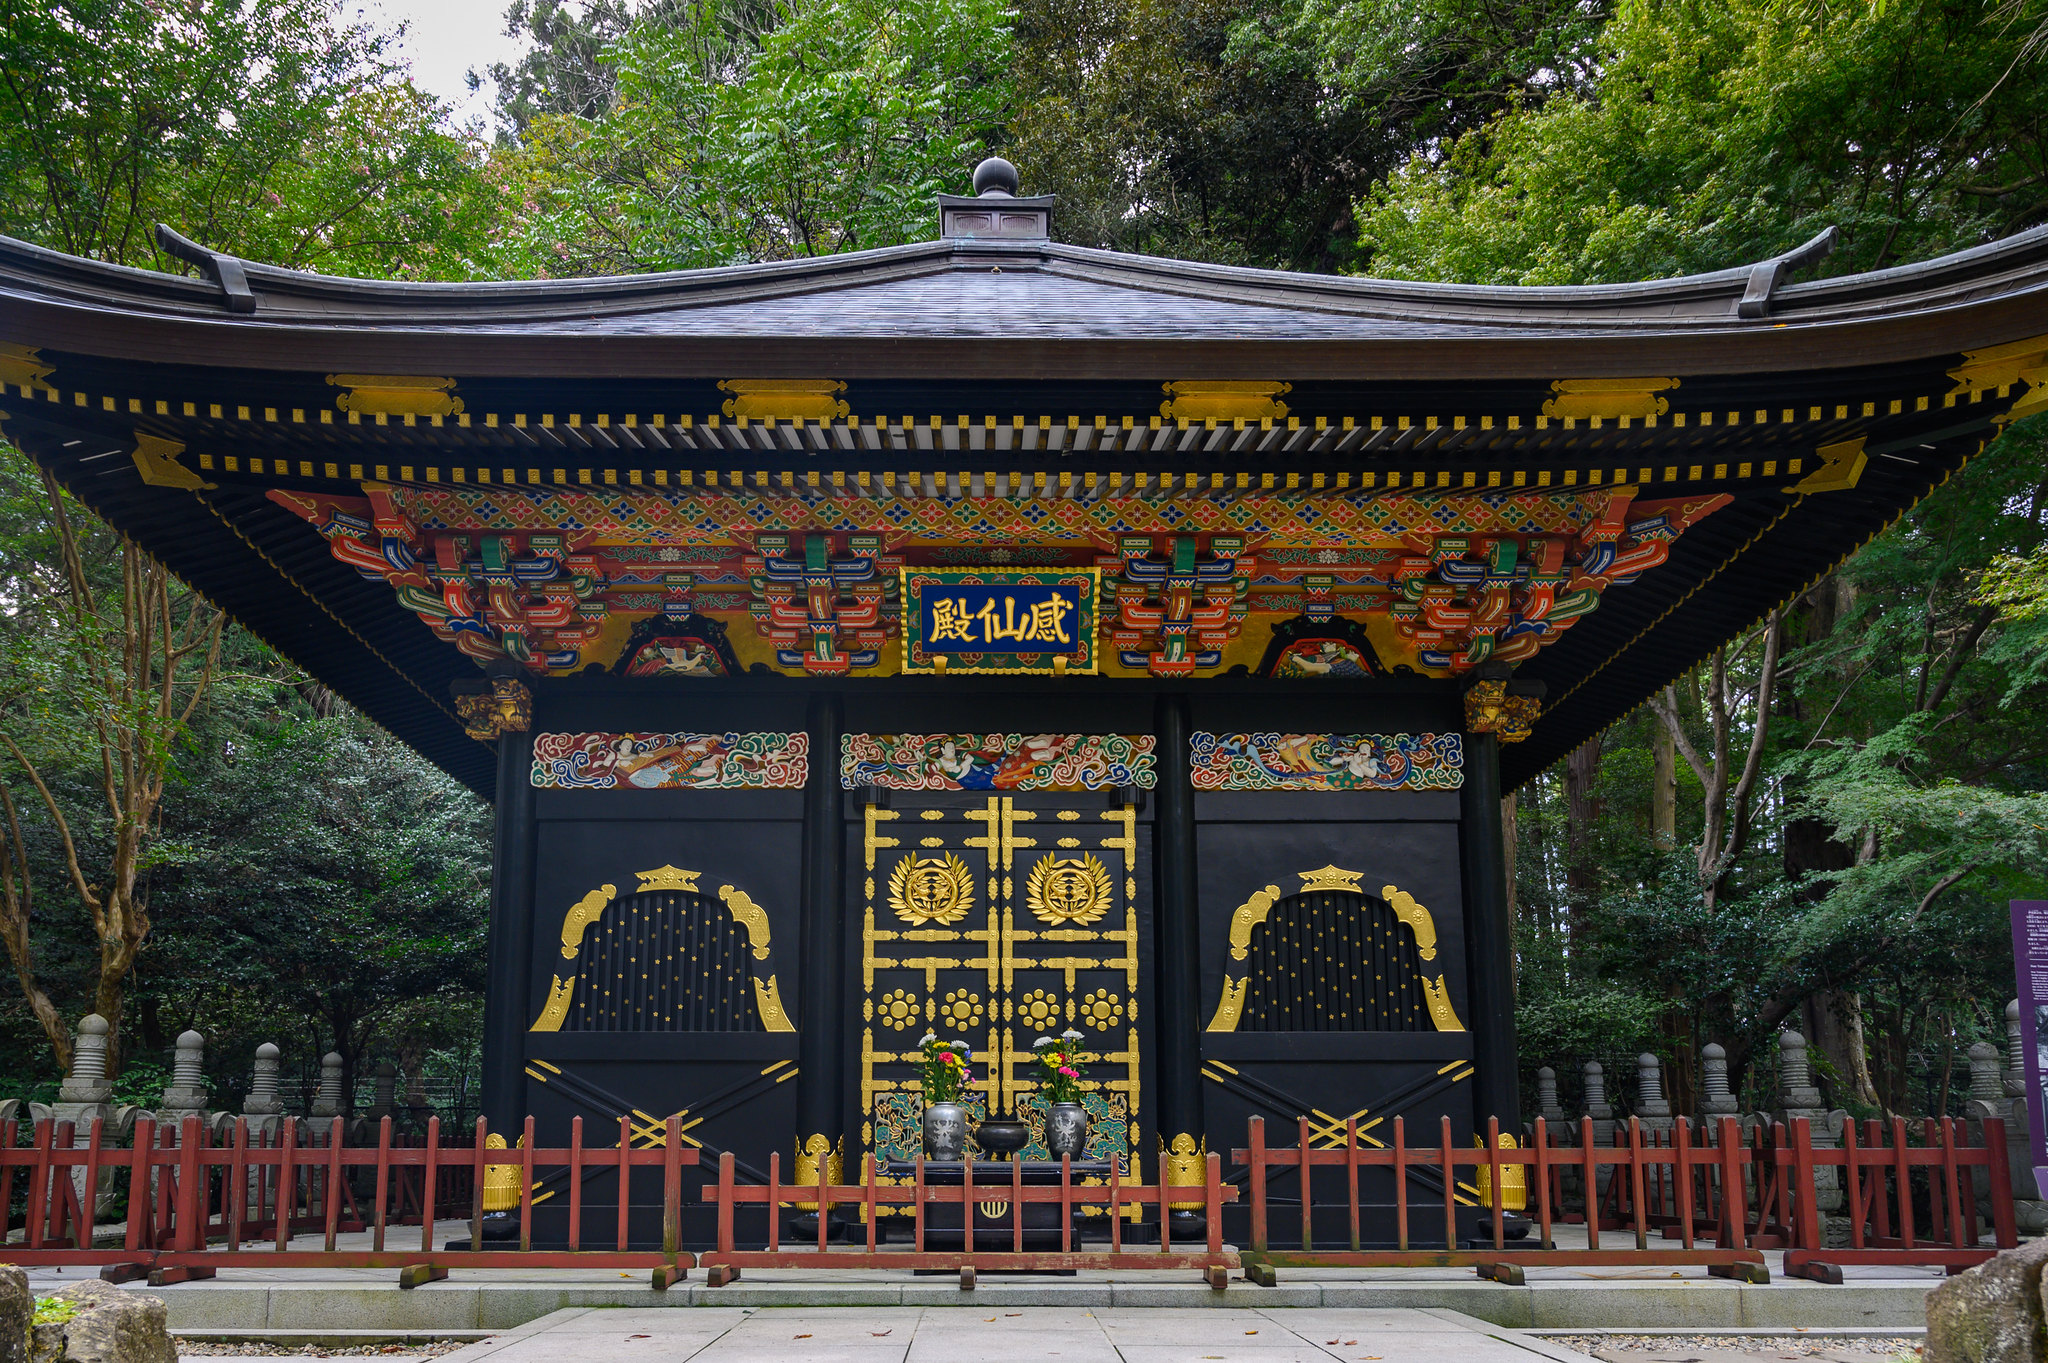 8 Best Things To Do in Sendai, Japan [with Suggested Tours]